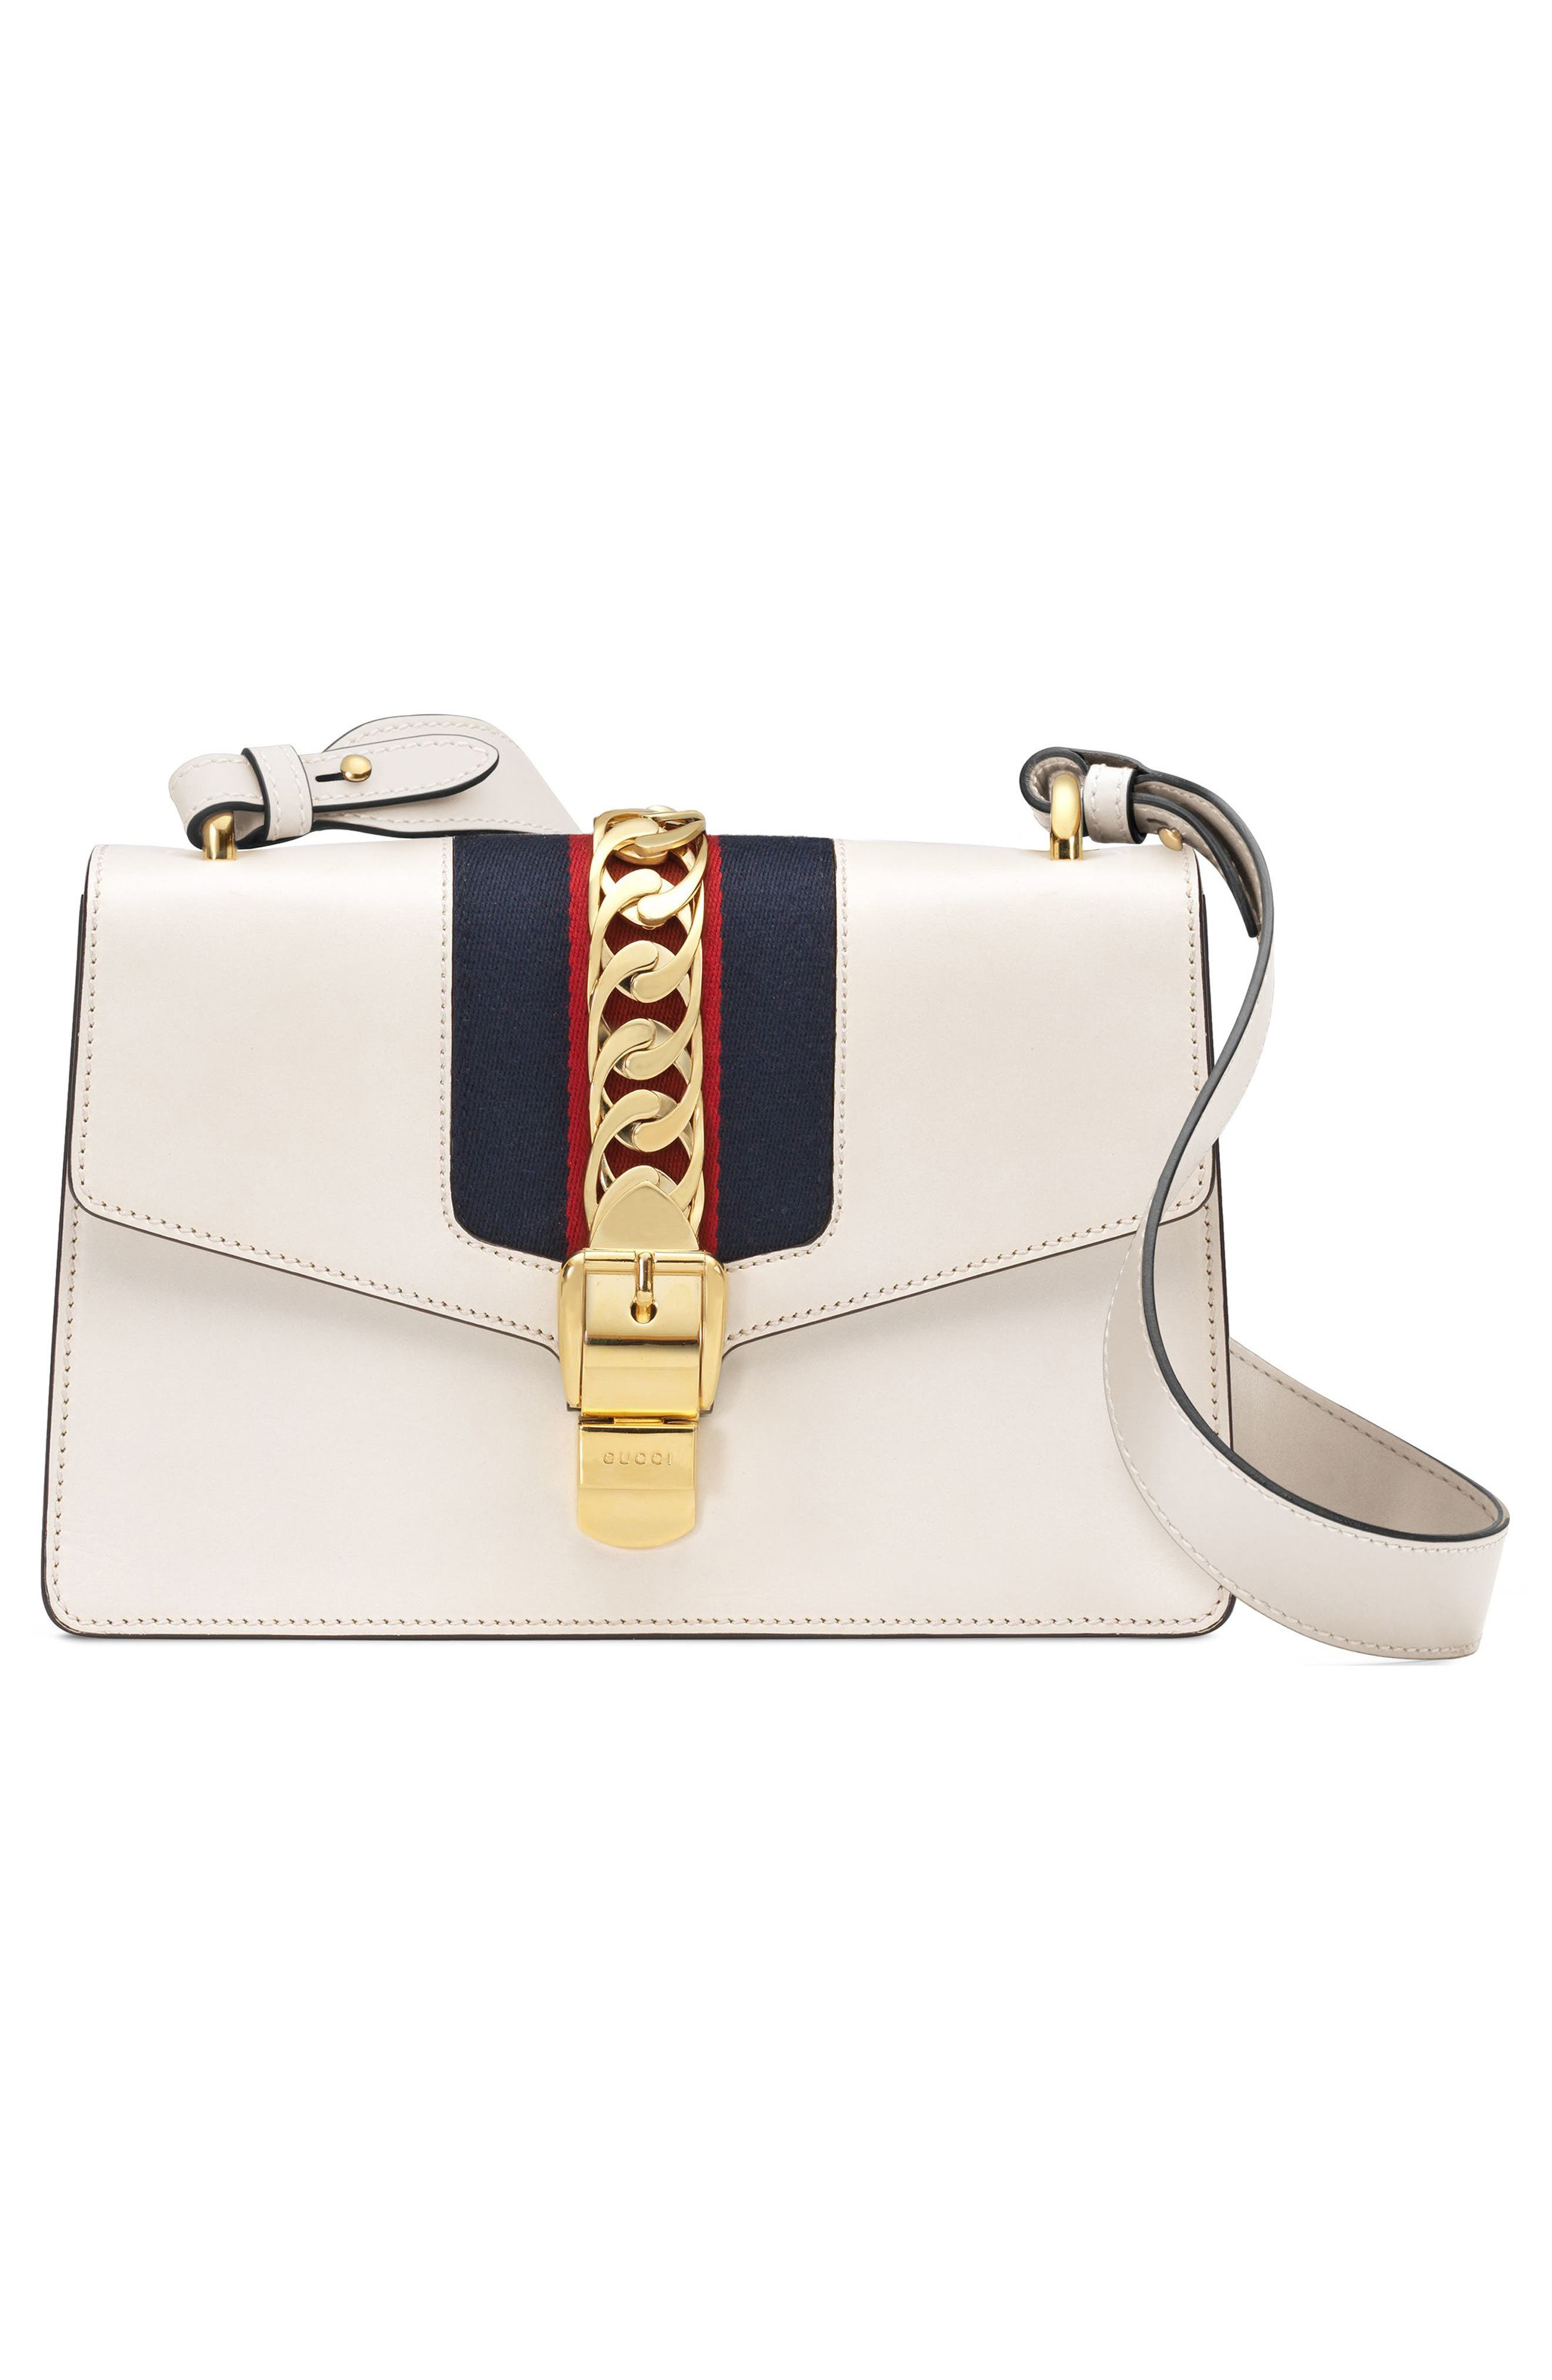 GUCCI, Small Sylvie Leather Shoulder Bag, Alternate thumbnail 5, color, WHITE